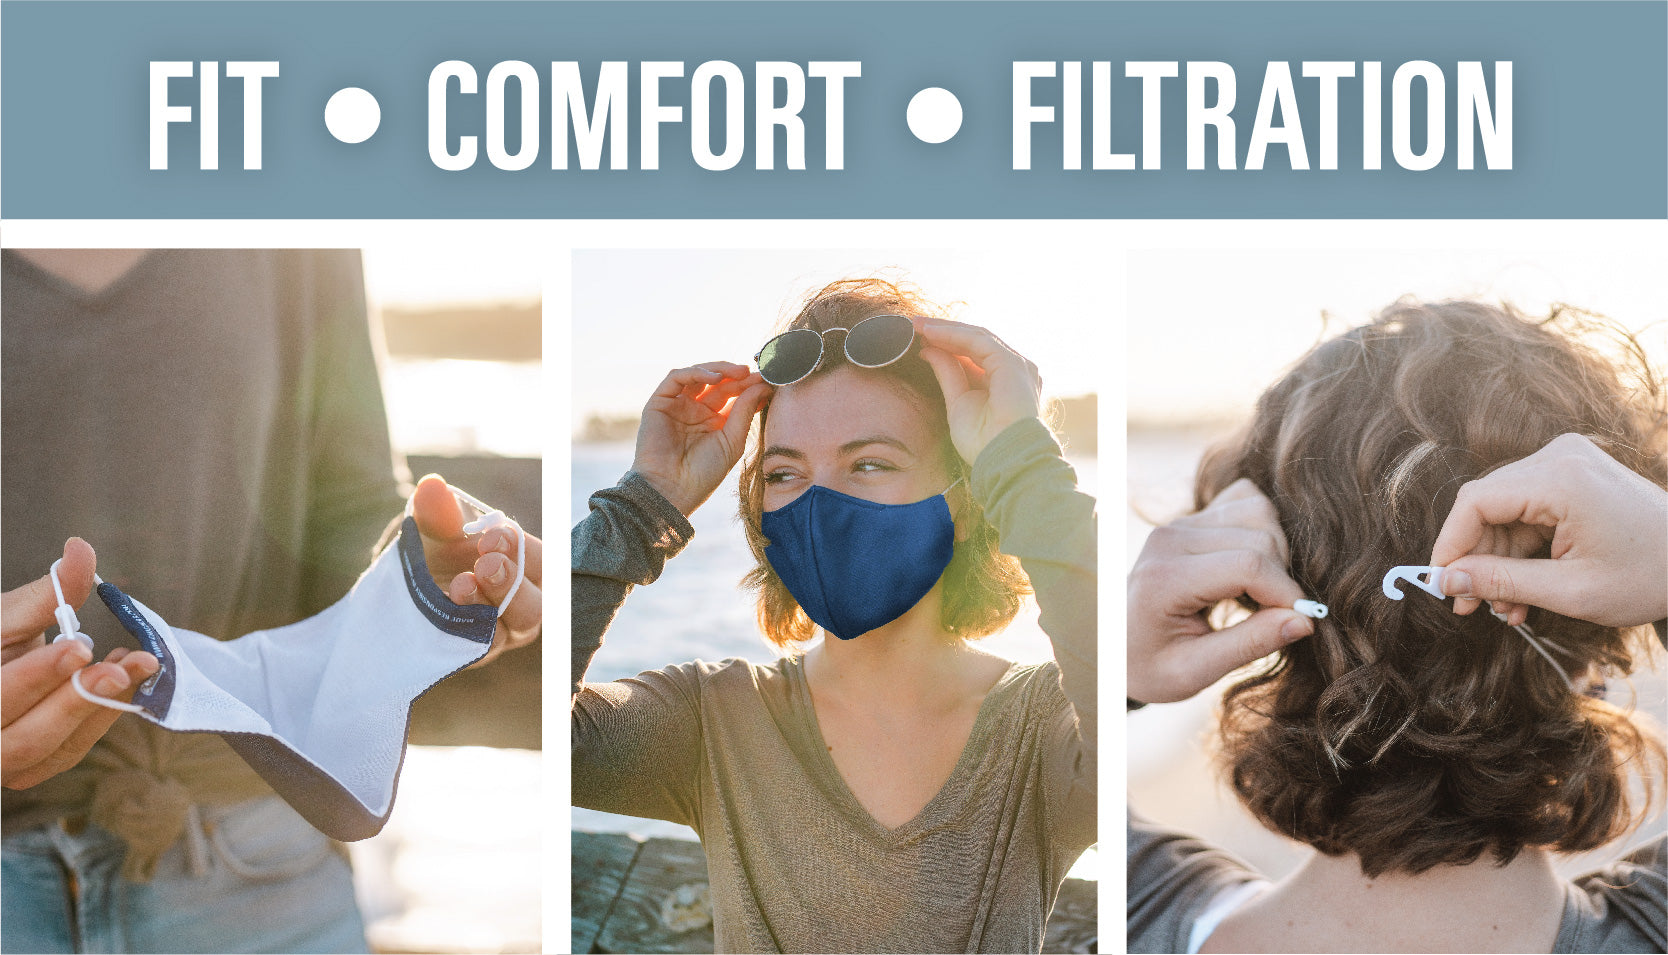 Fit, Comfort, Filtration: 3 Essential Qualities of an Effective Facemask